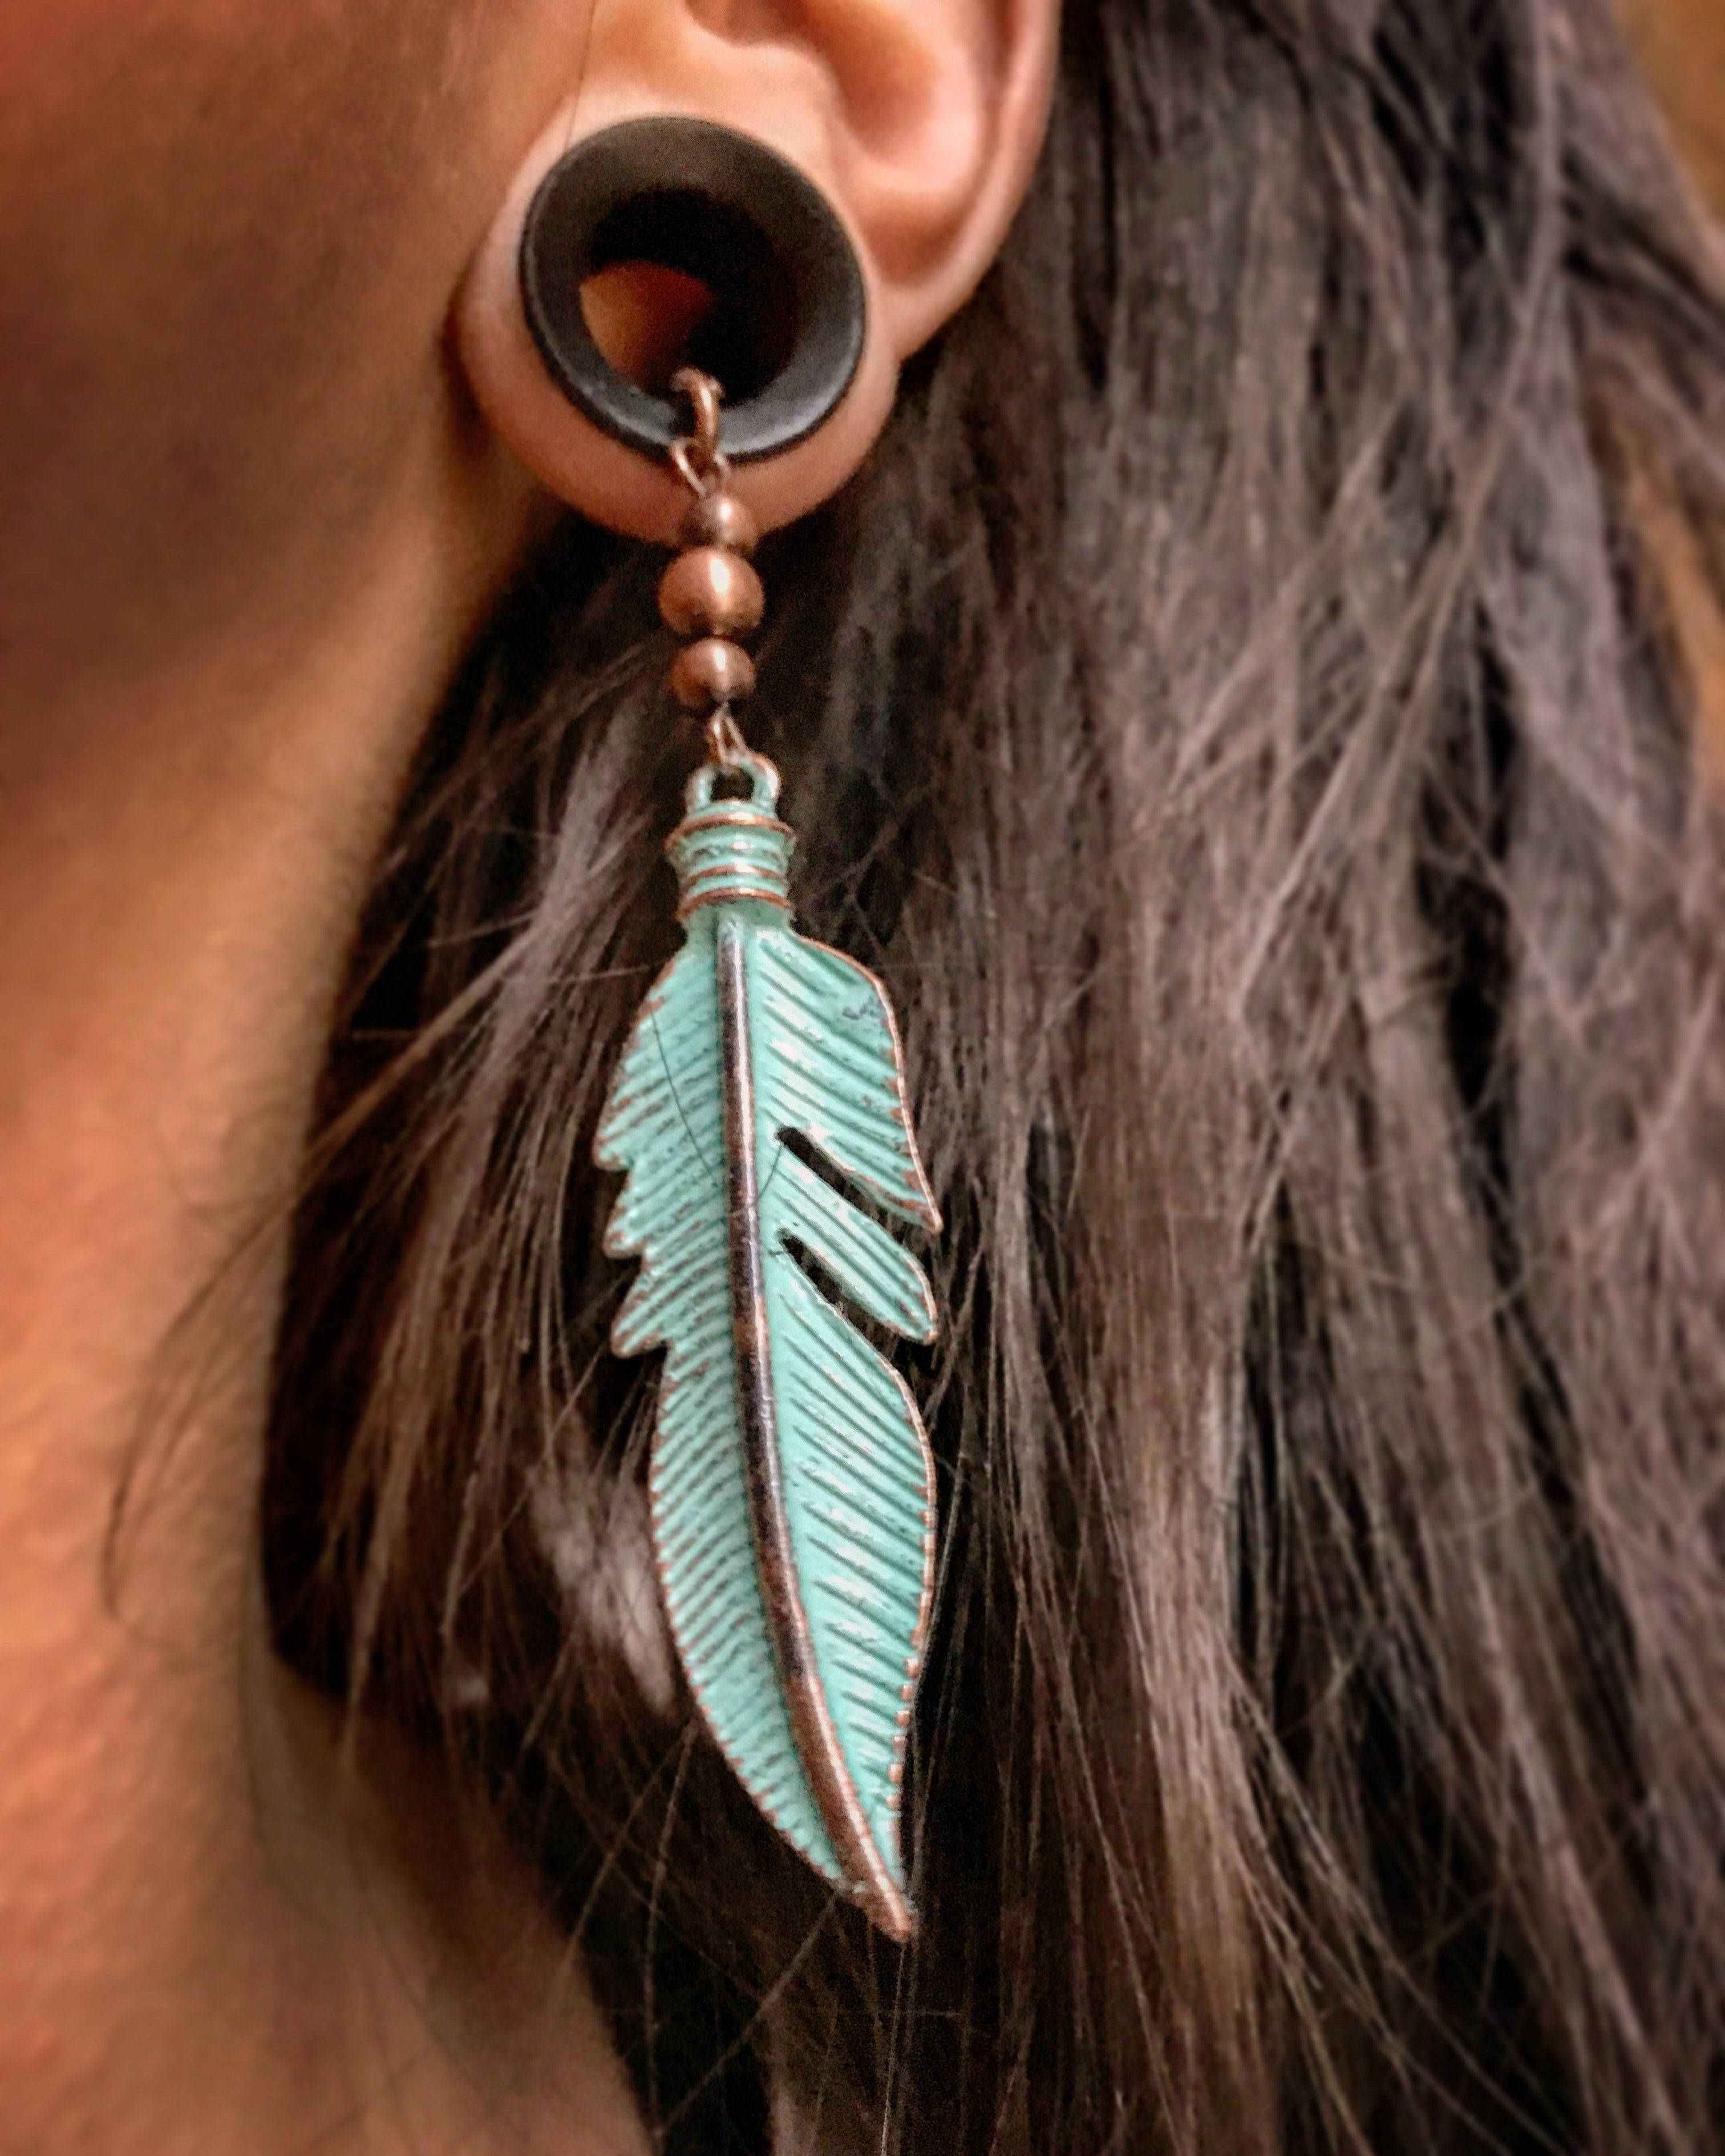 1 Pair Of Turquoise Feather Dangles On Wooden Ebony Tunnels Our Commitment To Giving Back Buy One Plant One As Plugs Earrings Gauged Earrings Gages For Ears